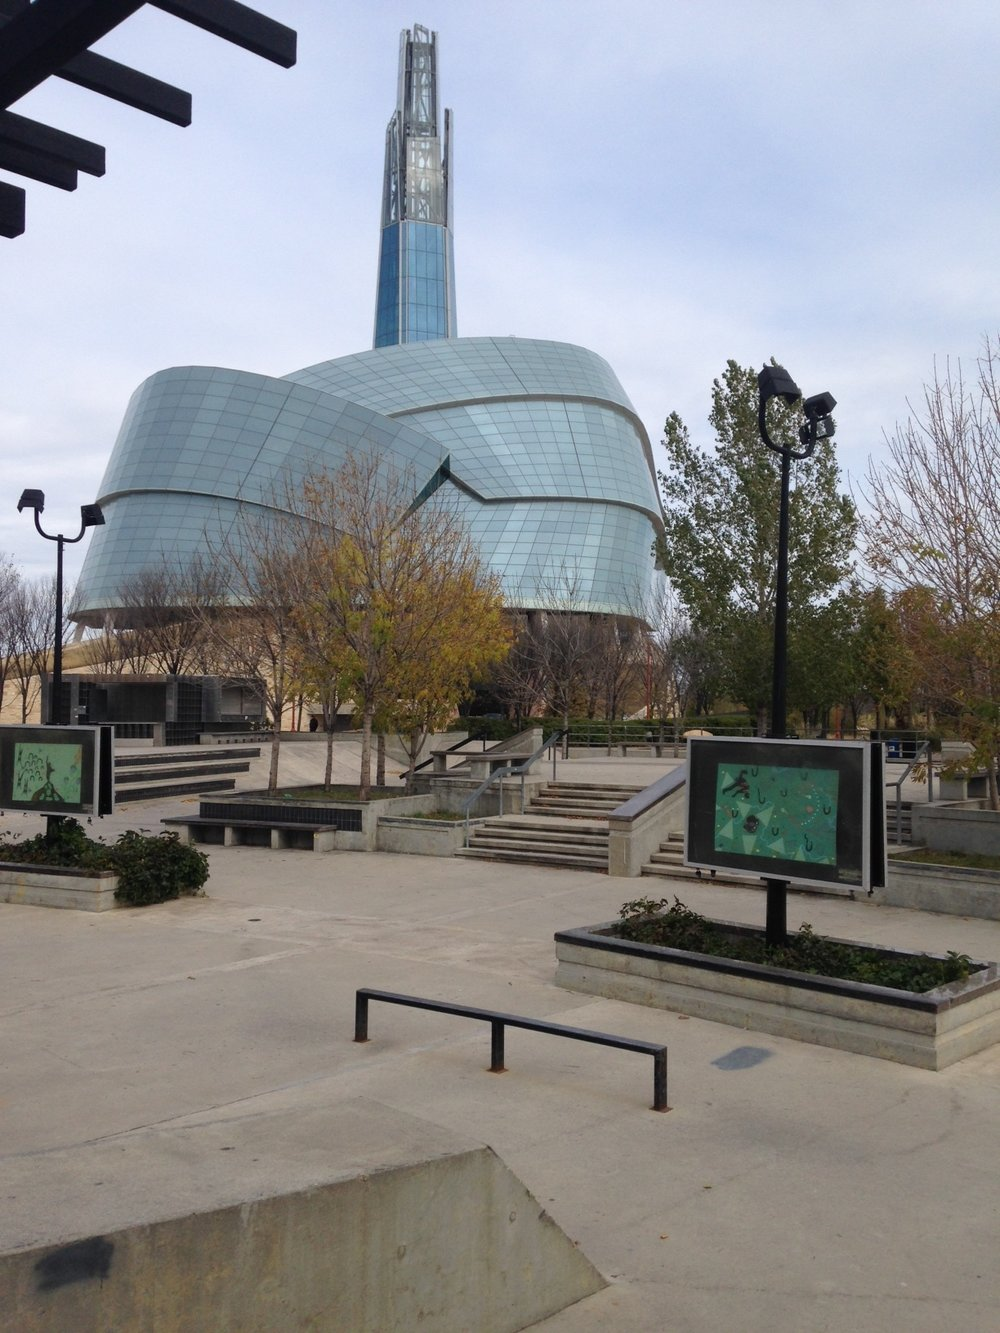 The uniquely shaped Human Rights Museum dominates The Forks. In the foreground is a multi-purpose plaza that can serve as a skatepark, busker/performance space or casual sitting area.